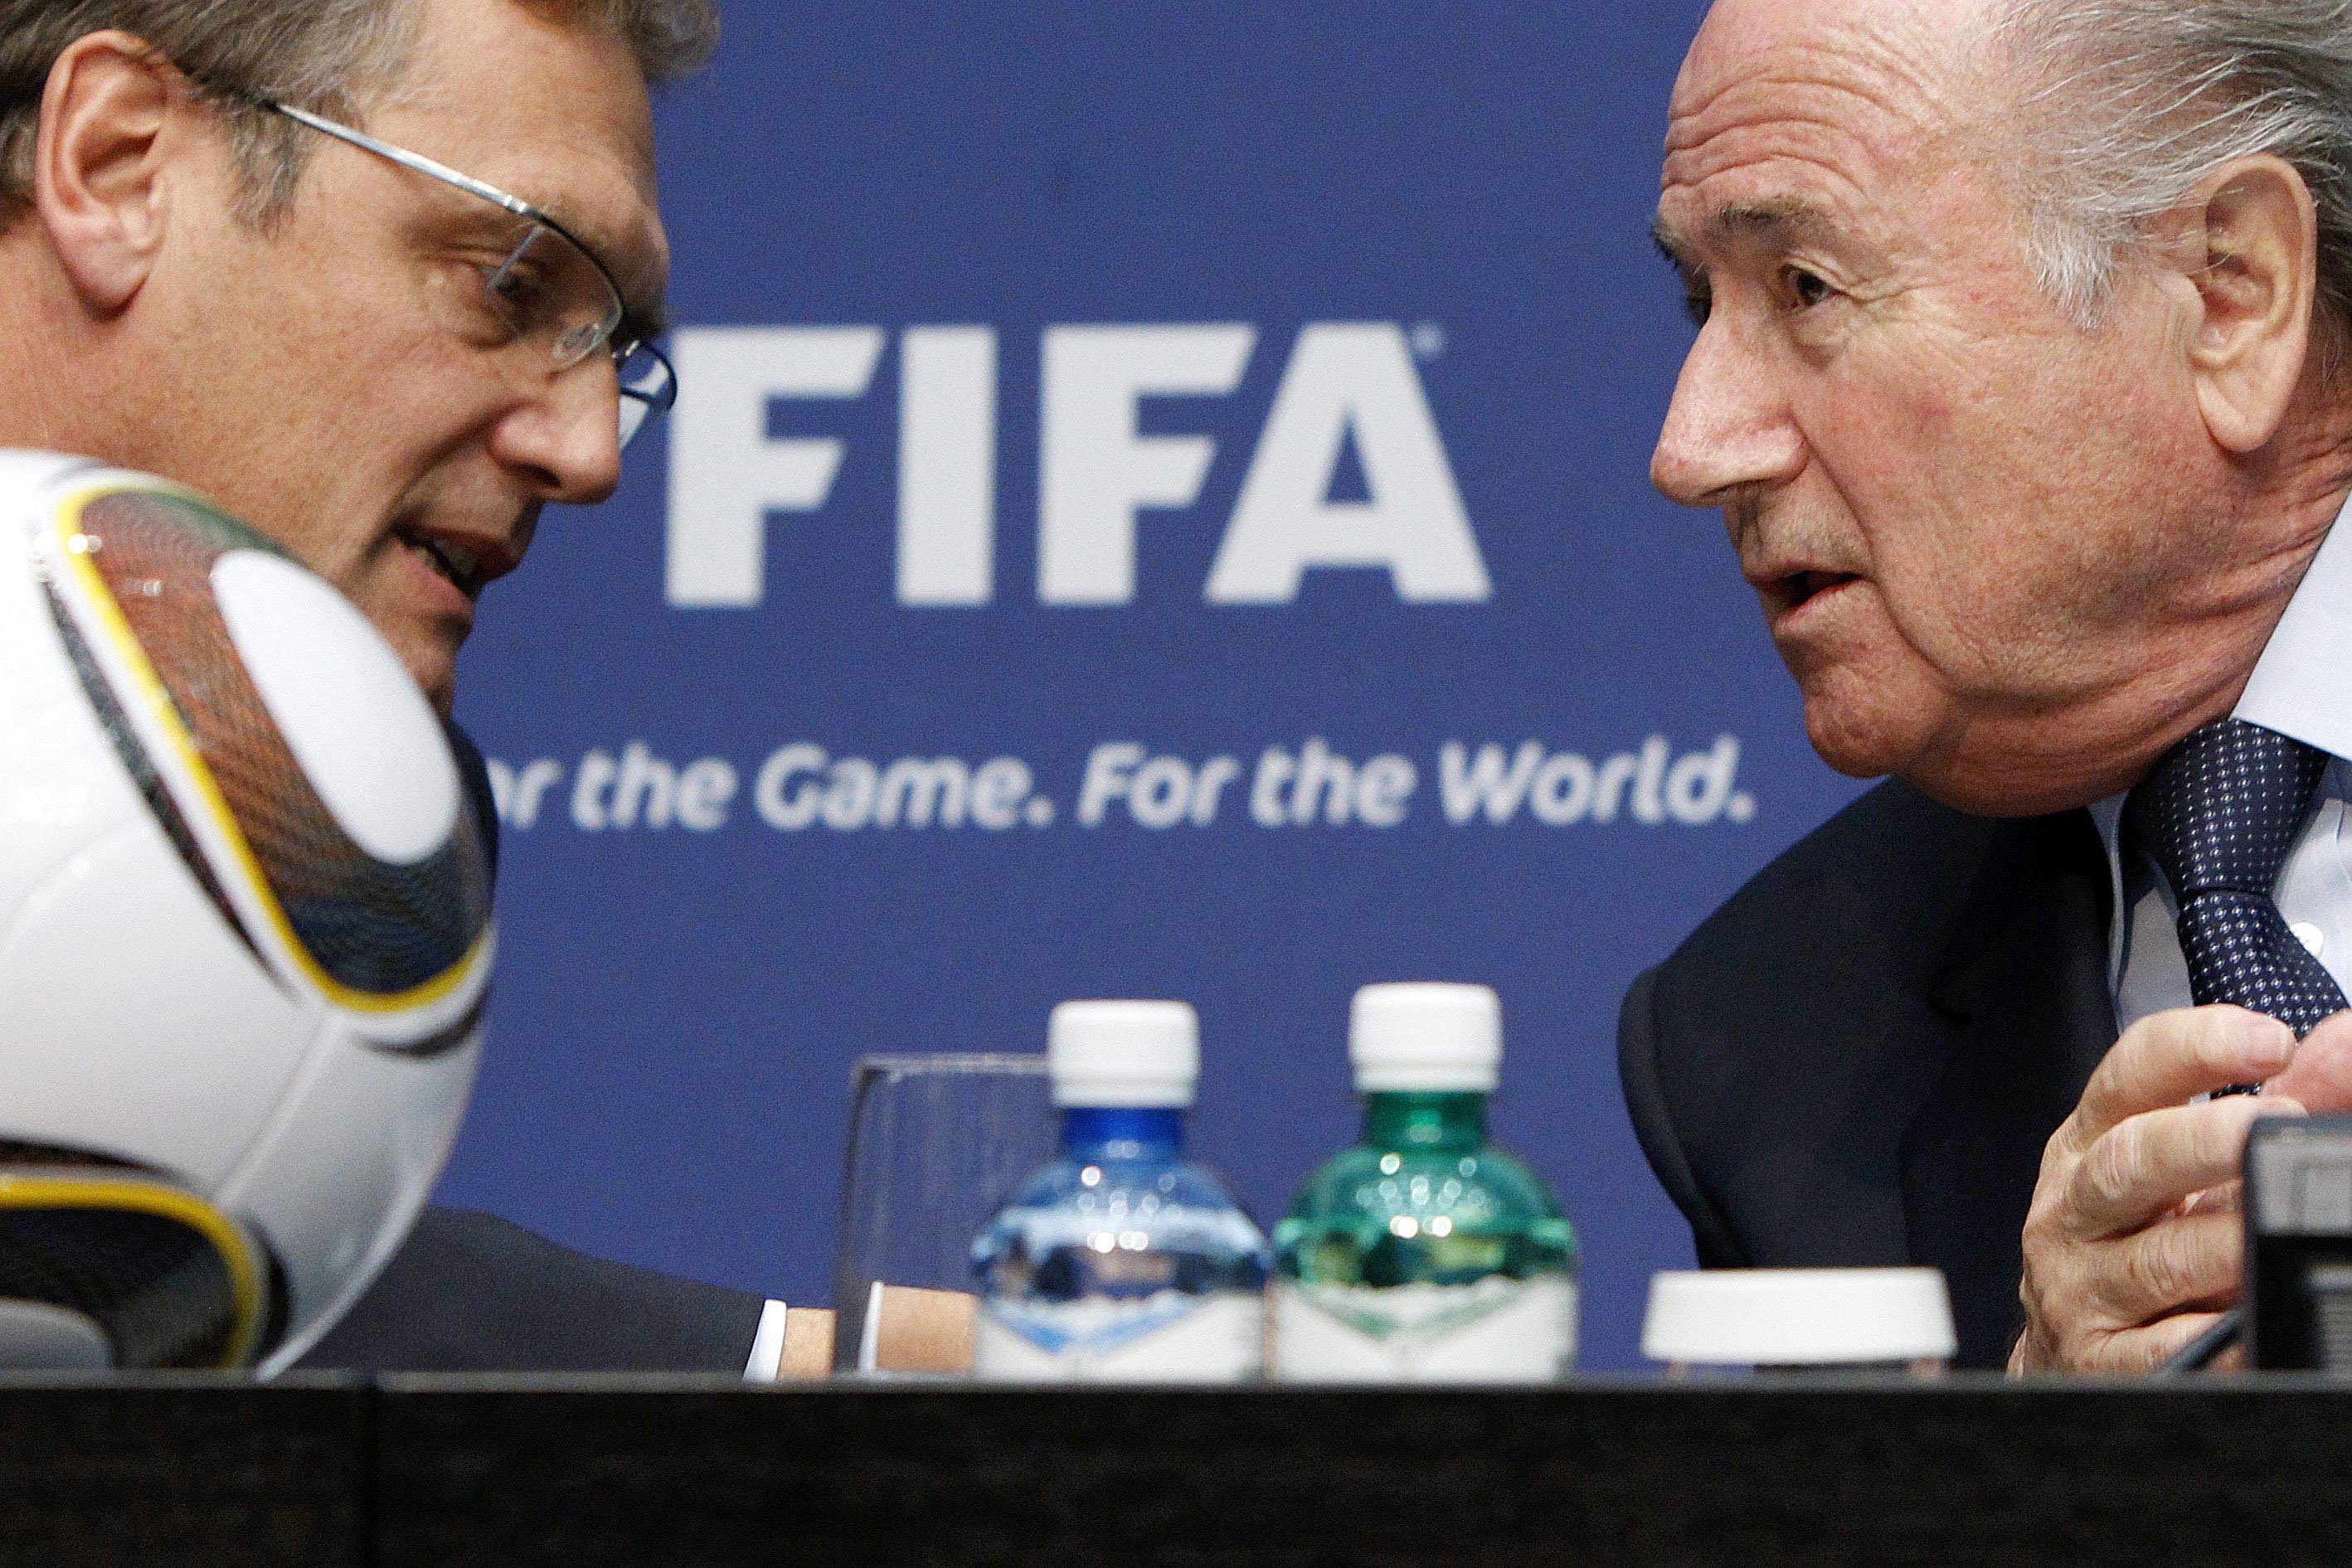 The then FIFA Secretary General  Jerome Valcke, left, and Sepp  Blatter, President of the International Soccer Federation FIFA share a word during a press conference after a two-day executive committee meeting at the FIFA headquarters in Zurich, Switzerland, on Friday, October  29, 2010. Photo: Alessandro Della Bella/ Keystone via AP/File